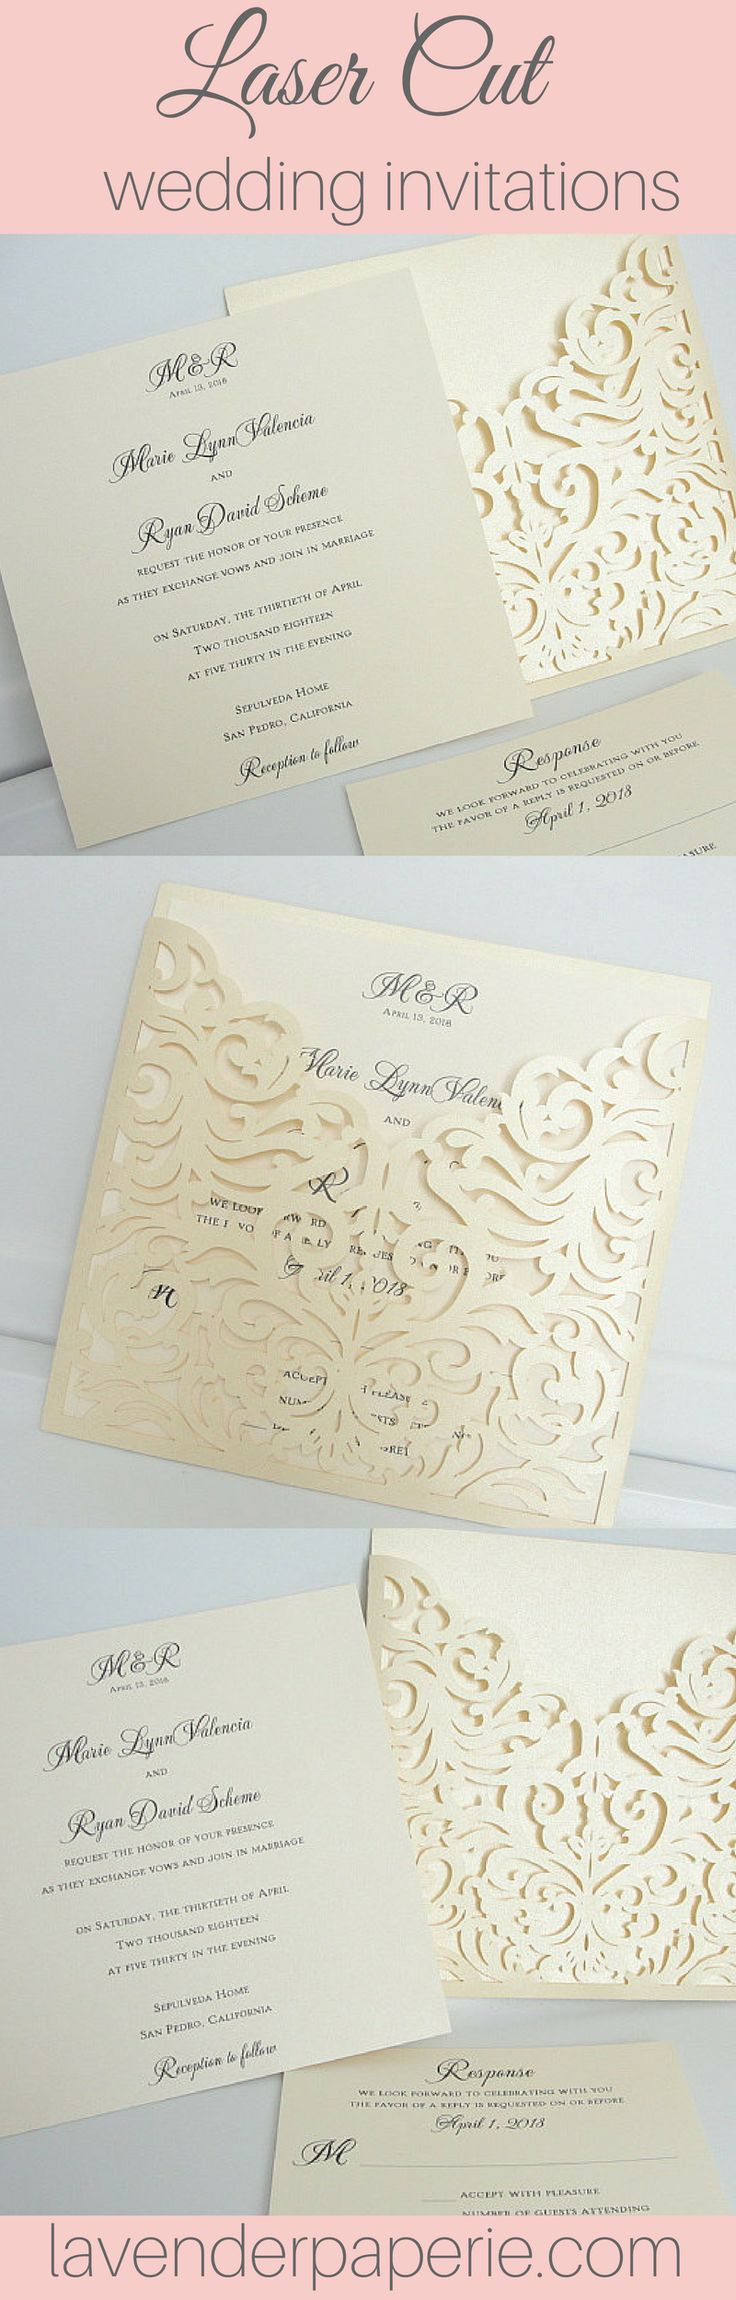 100 Best Fabulous Wedding Invitations Images On Pinterest